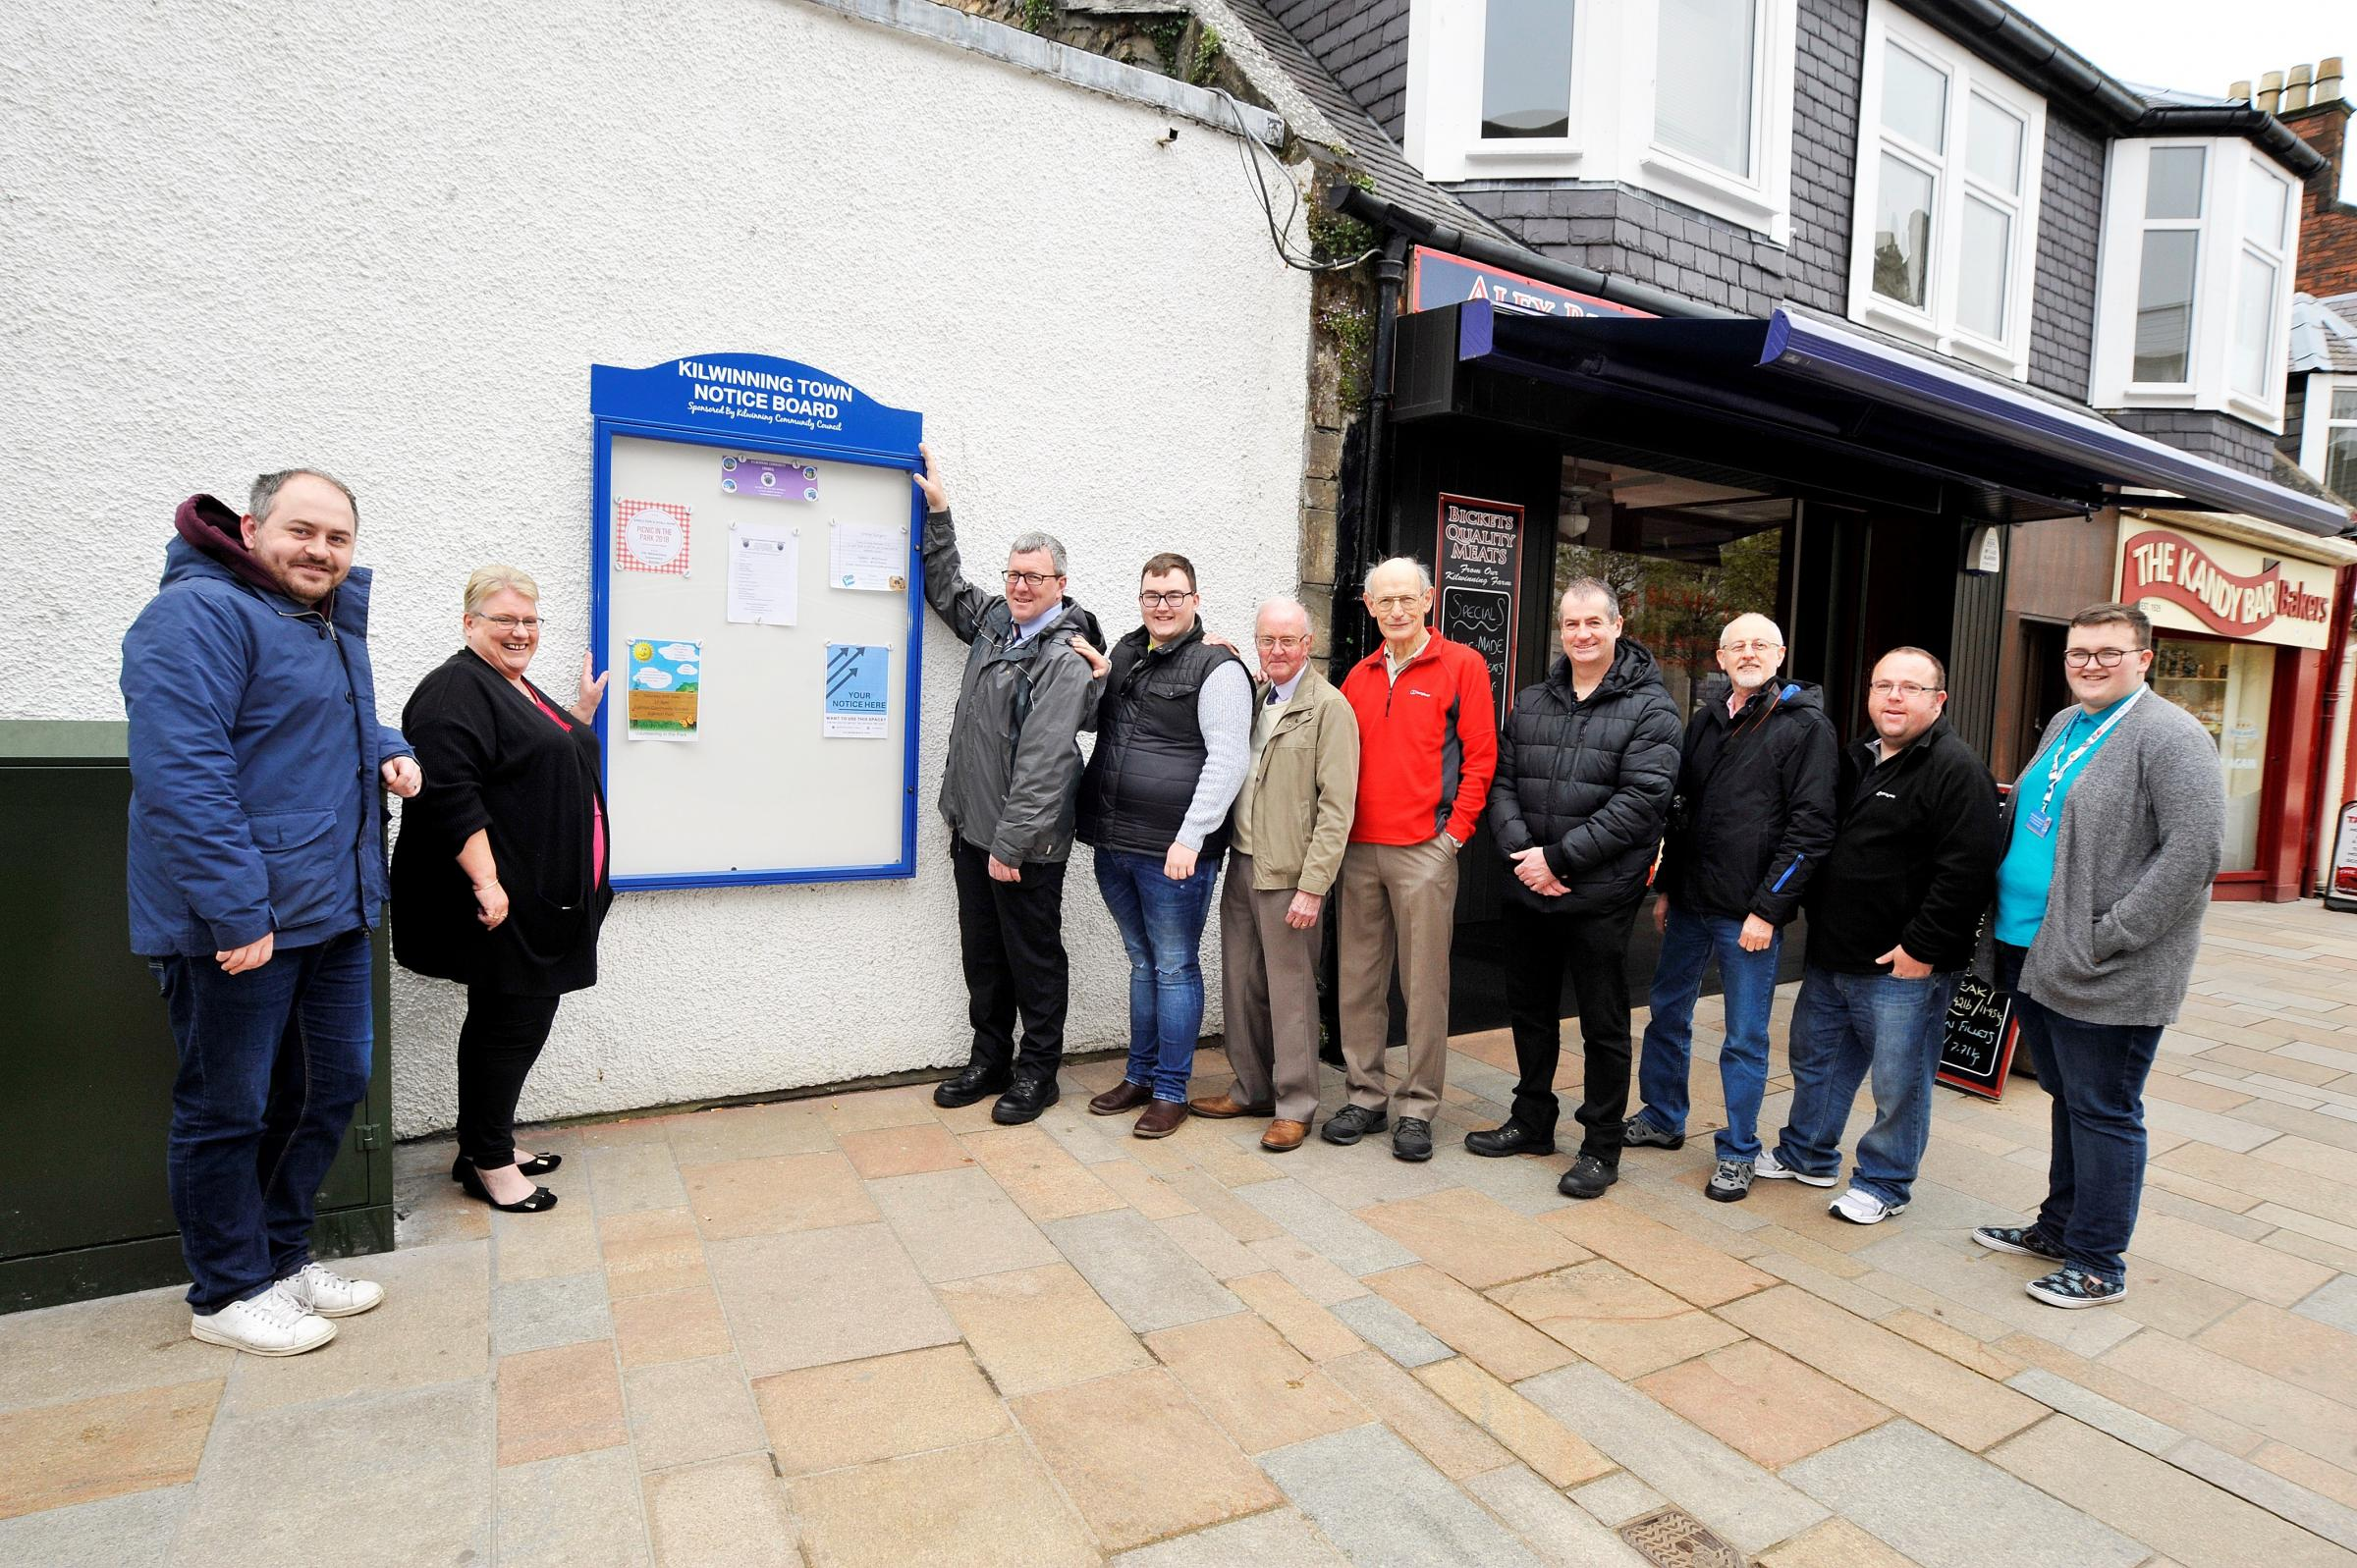 Kilwinning community councillors unveiled the board on Saturday